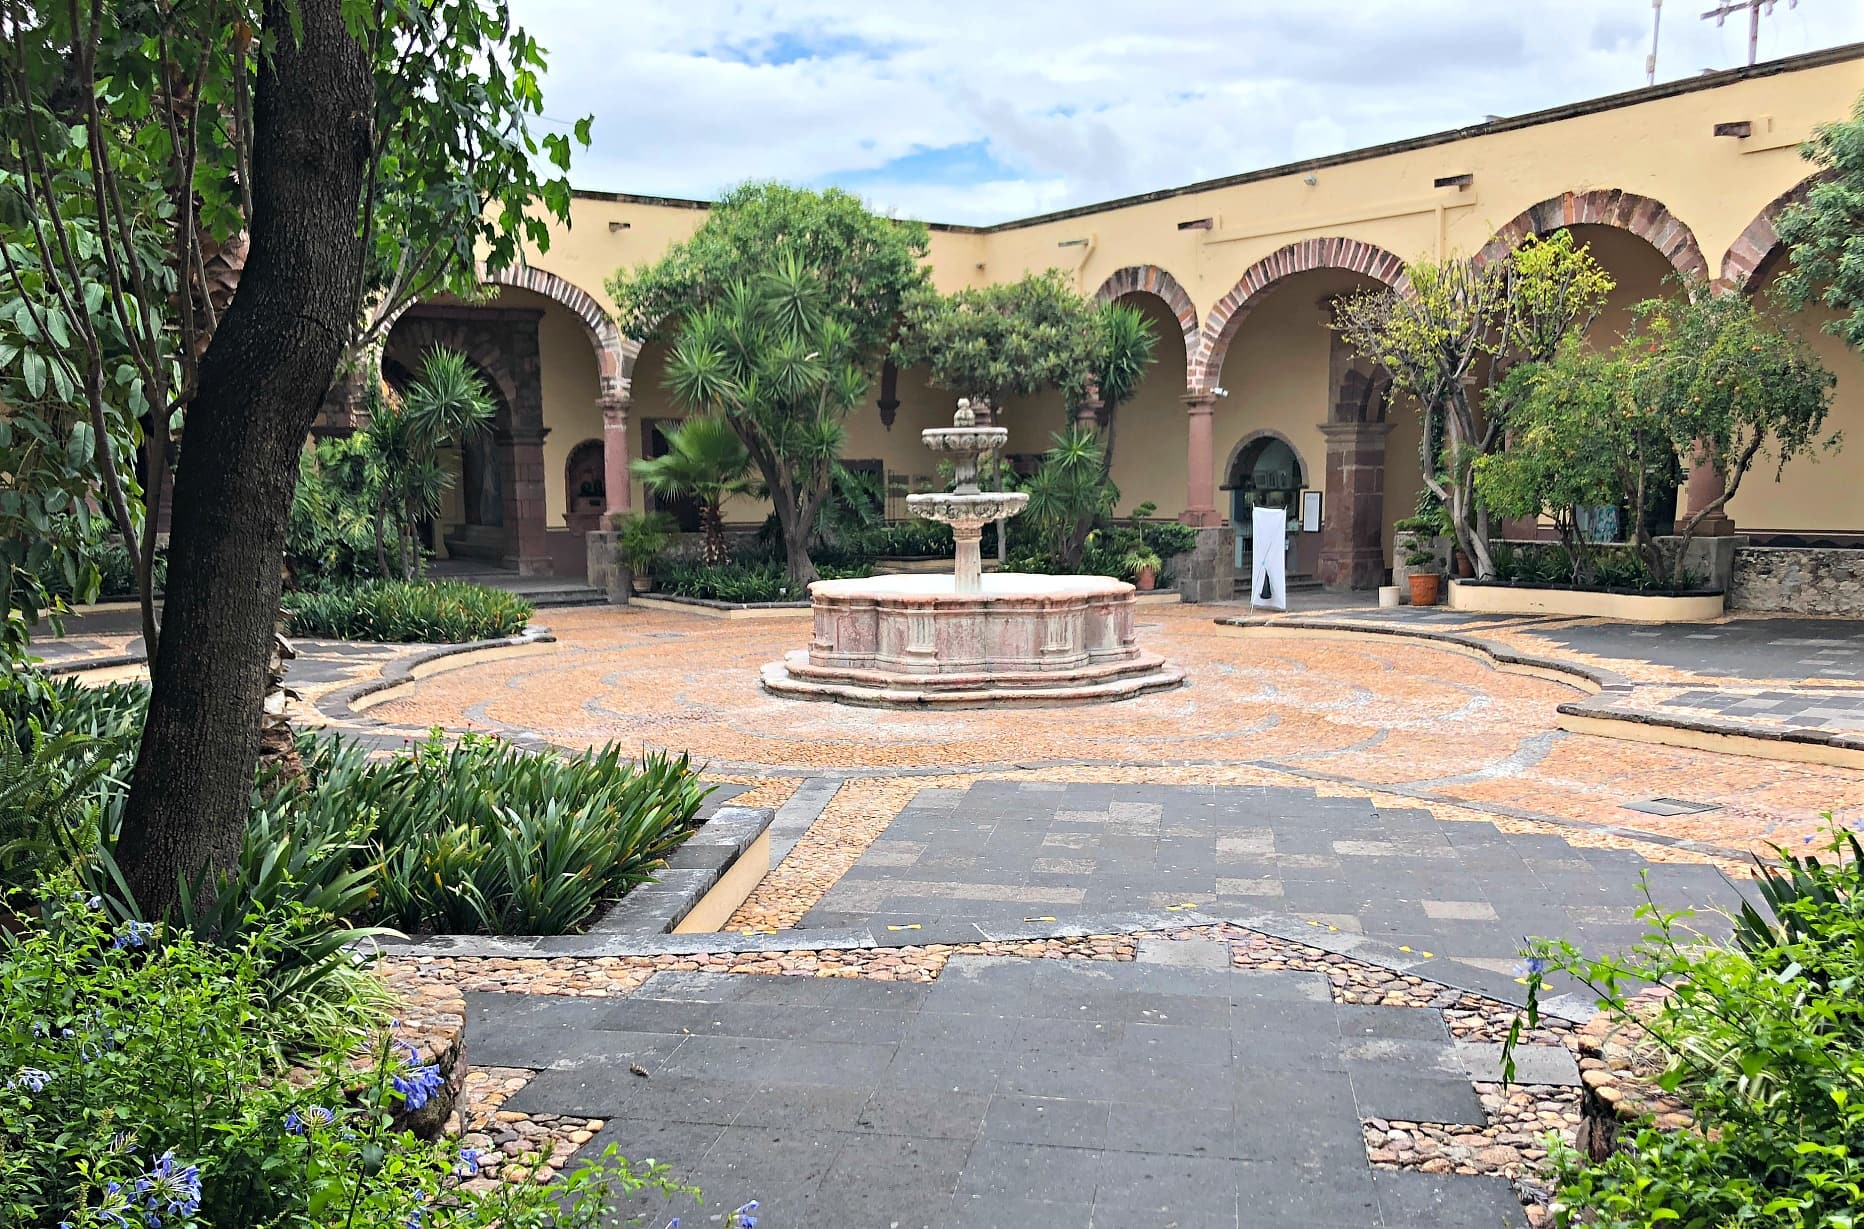 Instituto Allende helped establish San Miguel de Allende as an artistic city